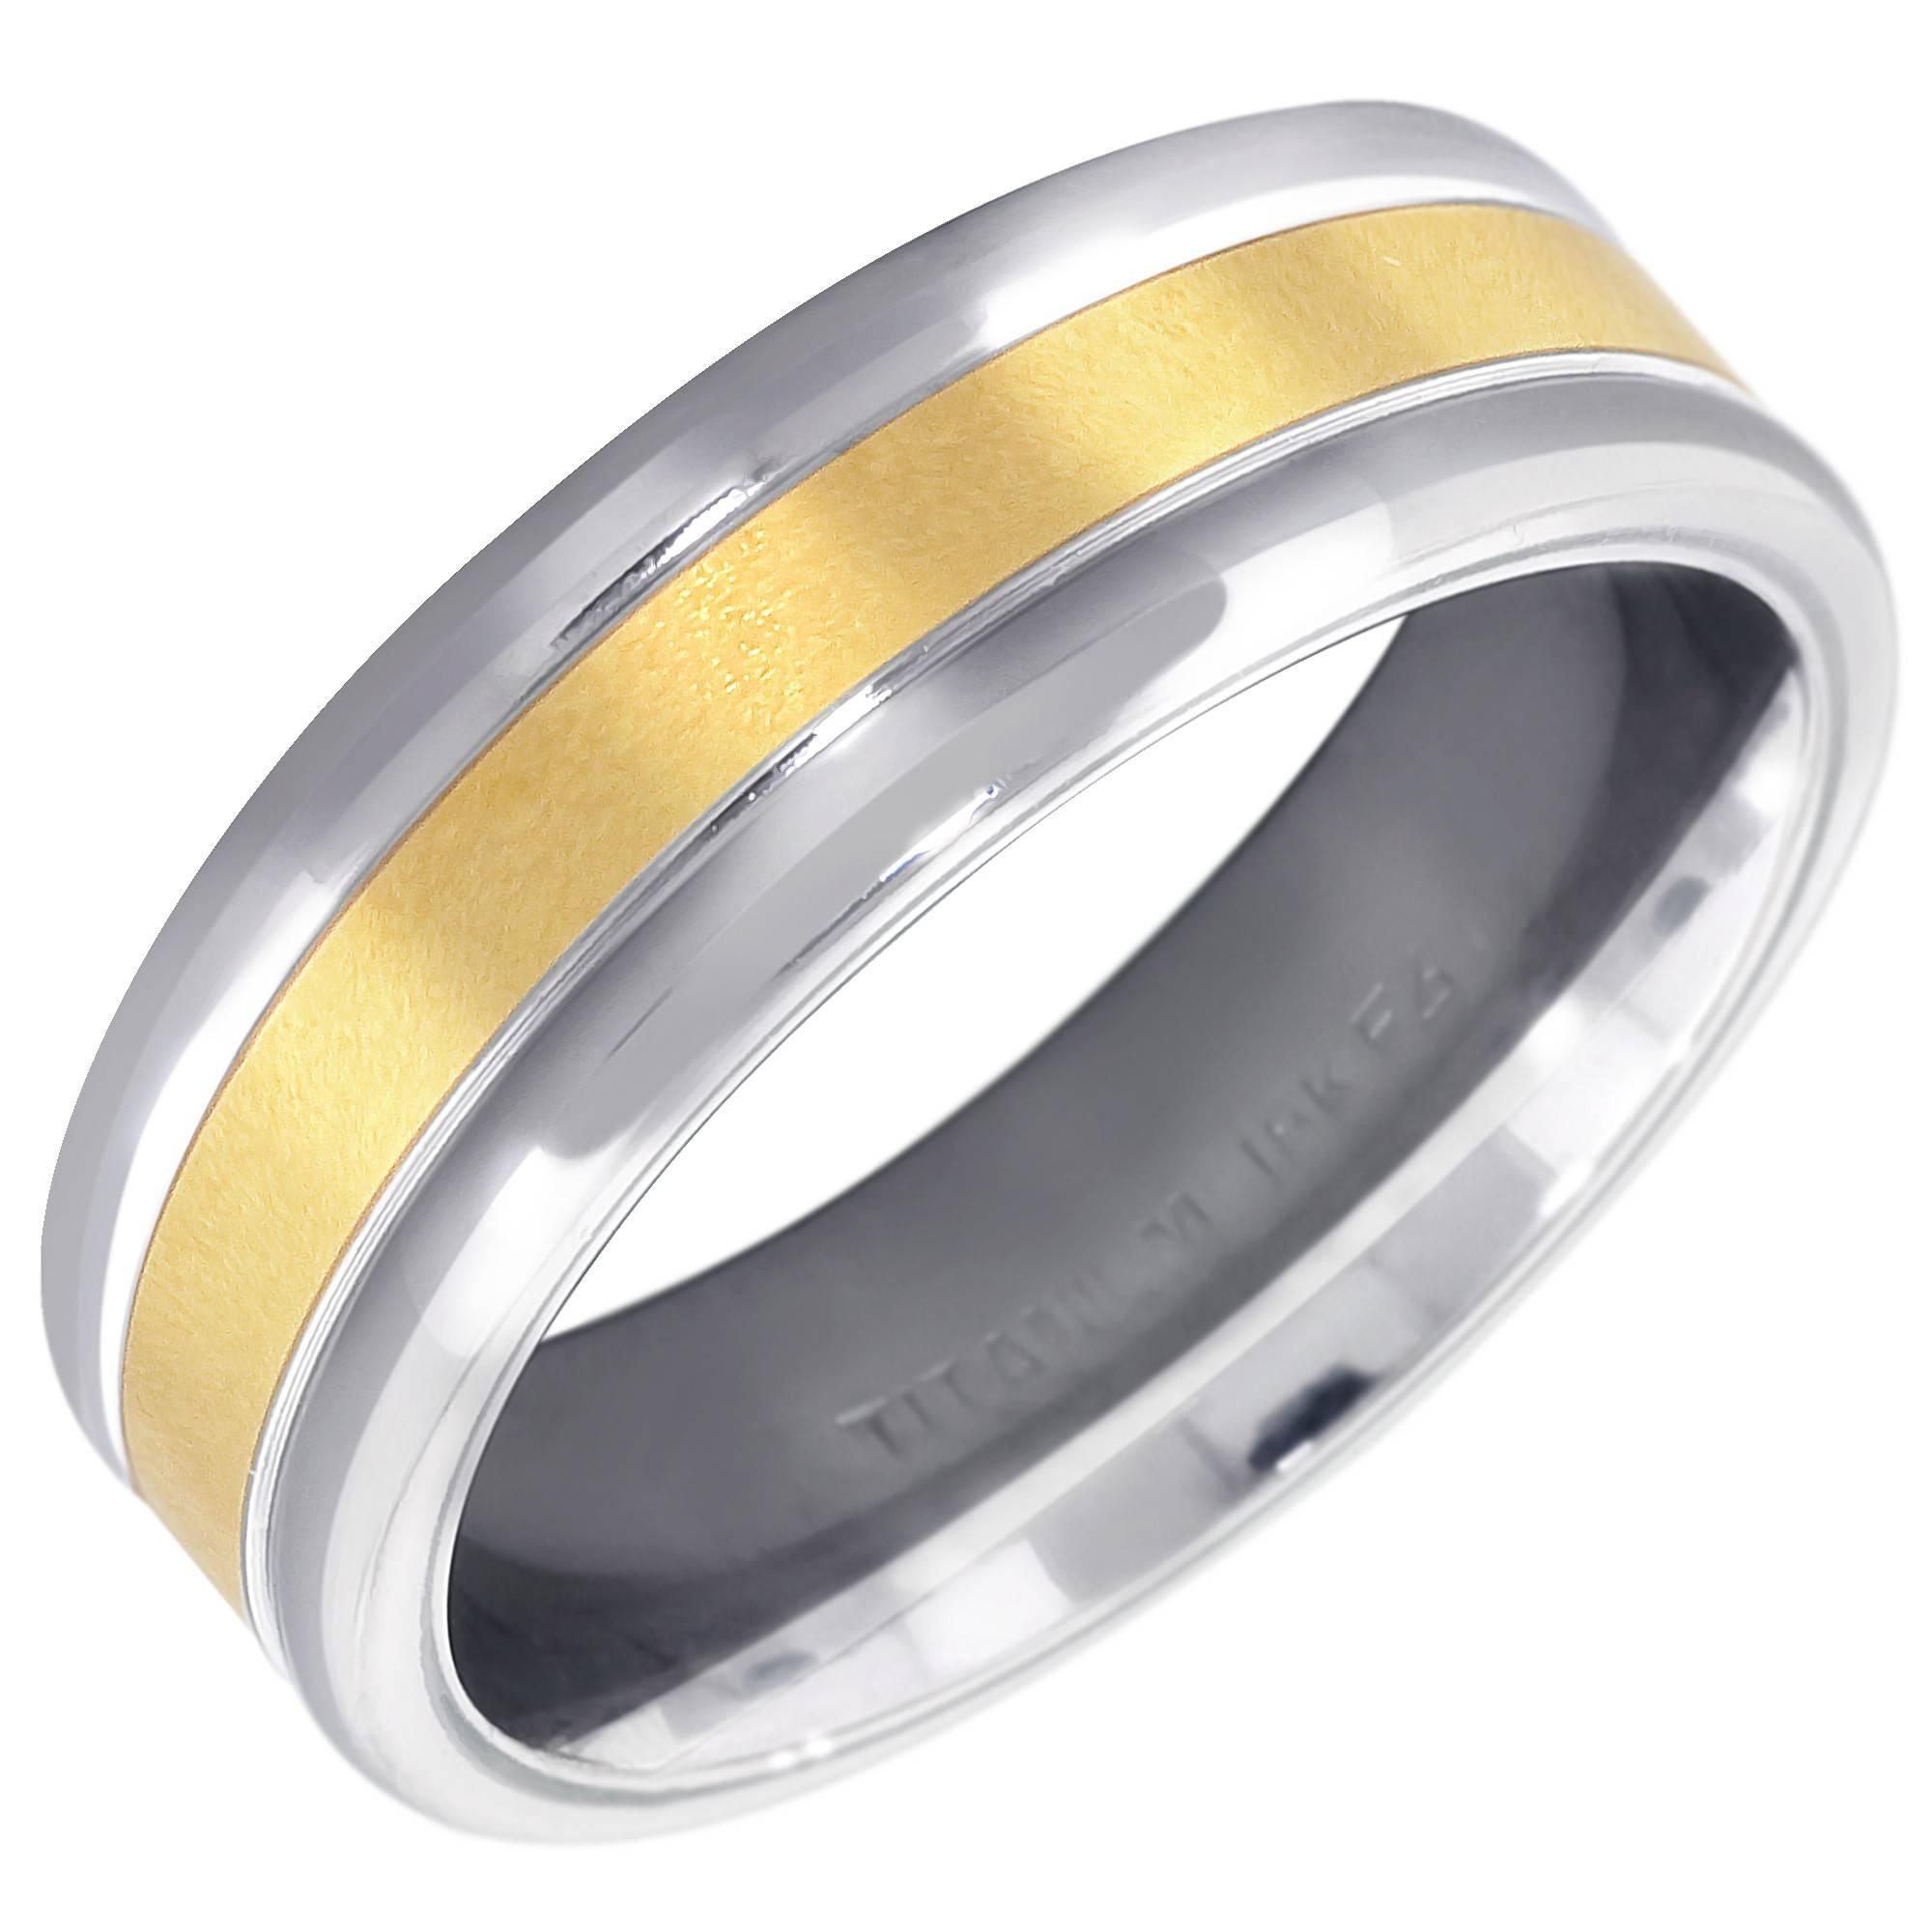 Mens Comfort Fit Wedding Band In Titanium And 18kt Yellow Gold (7mm) With Regard To Silver And Gold Mens Wedding Bands (View 14 of 15)